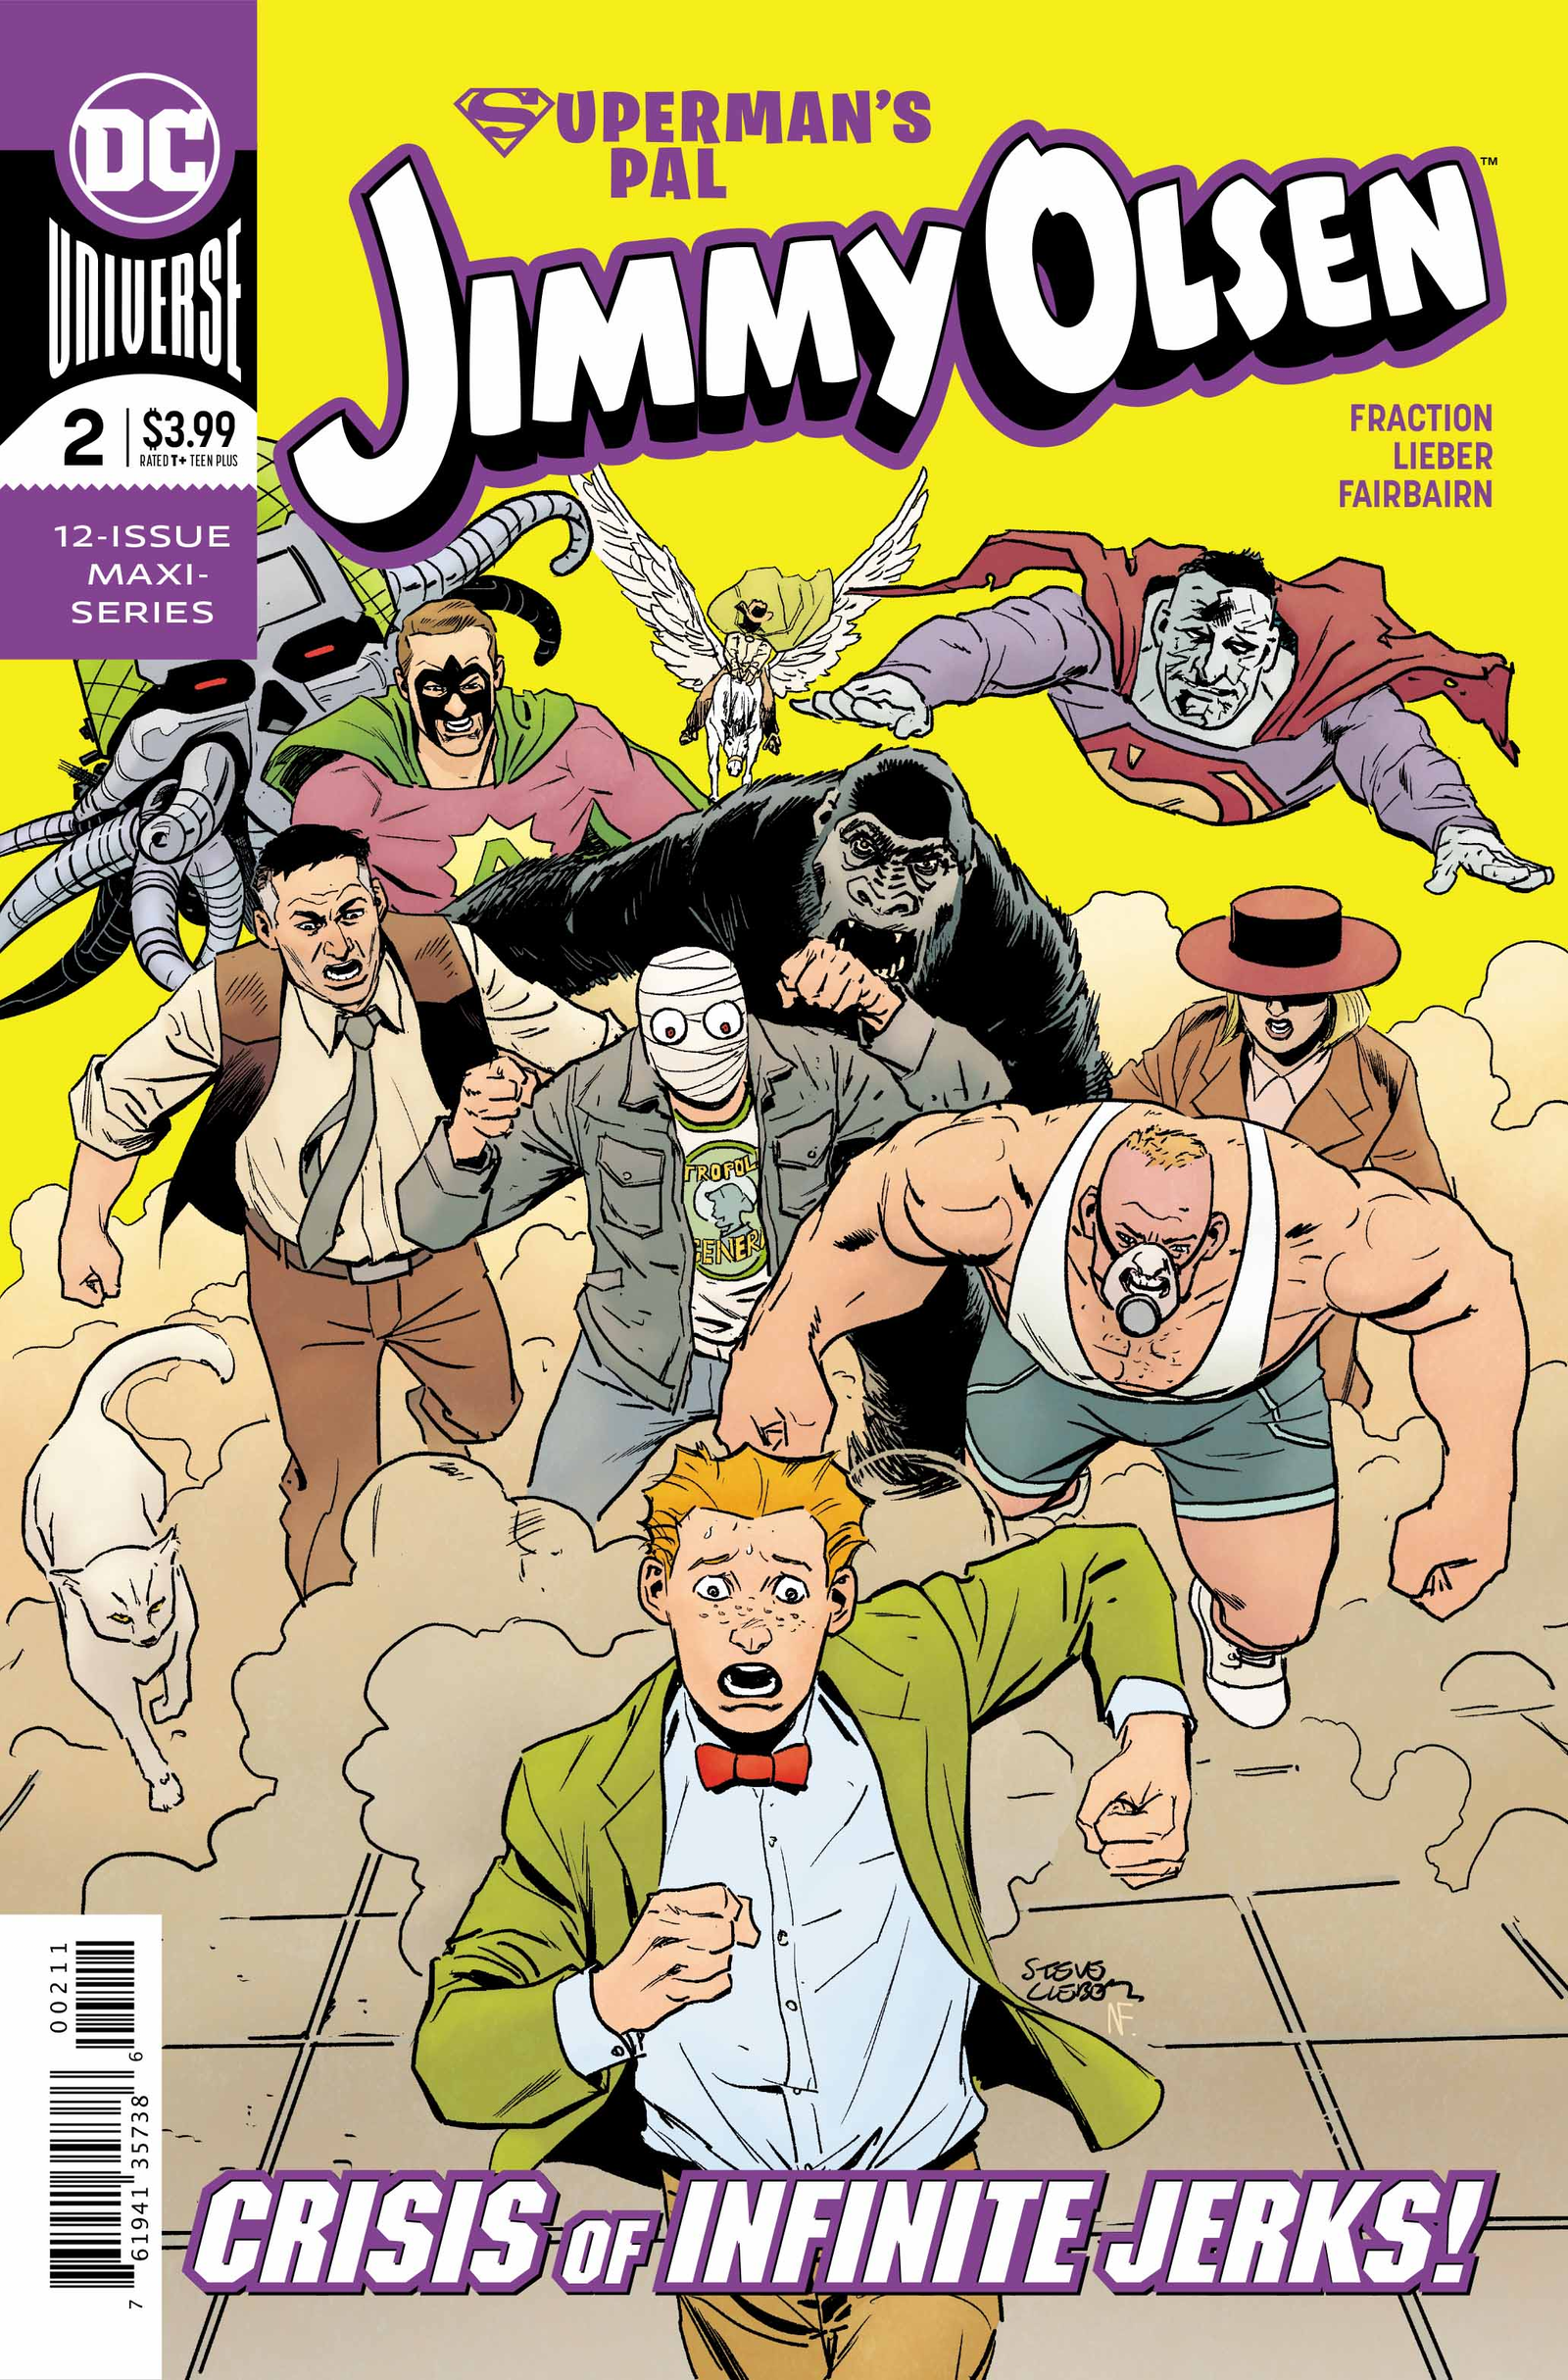 Cover by Steve Lieber and Nathan Fairbairn